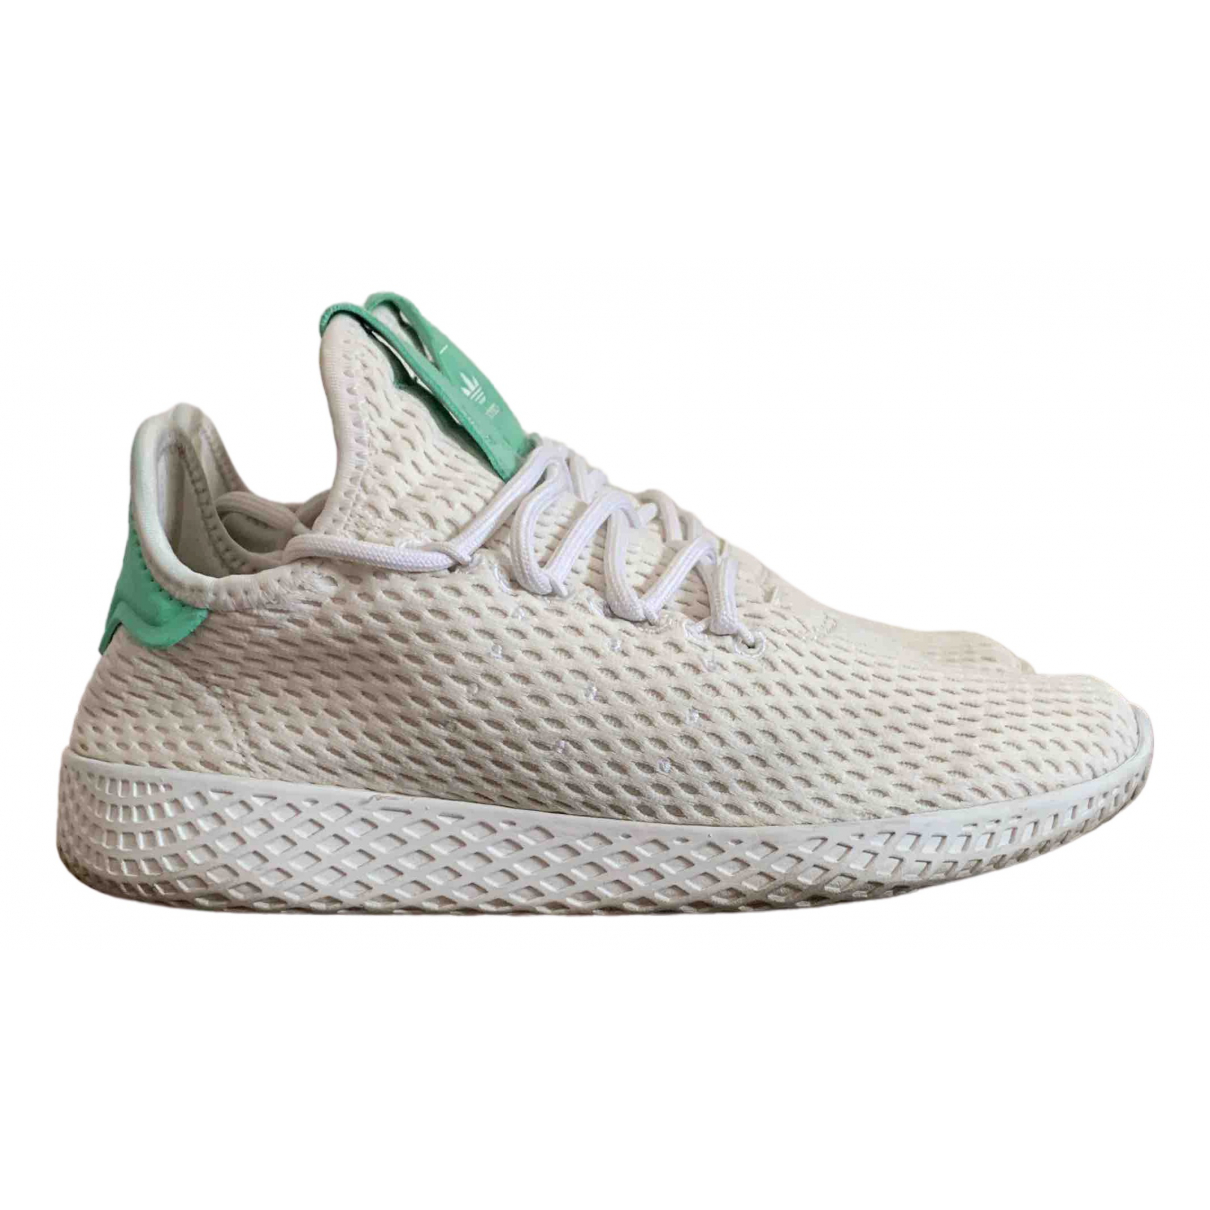 Adidas X Pharrell Williams - Baskets   pour femme en toile - blanc